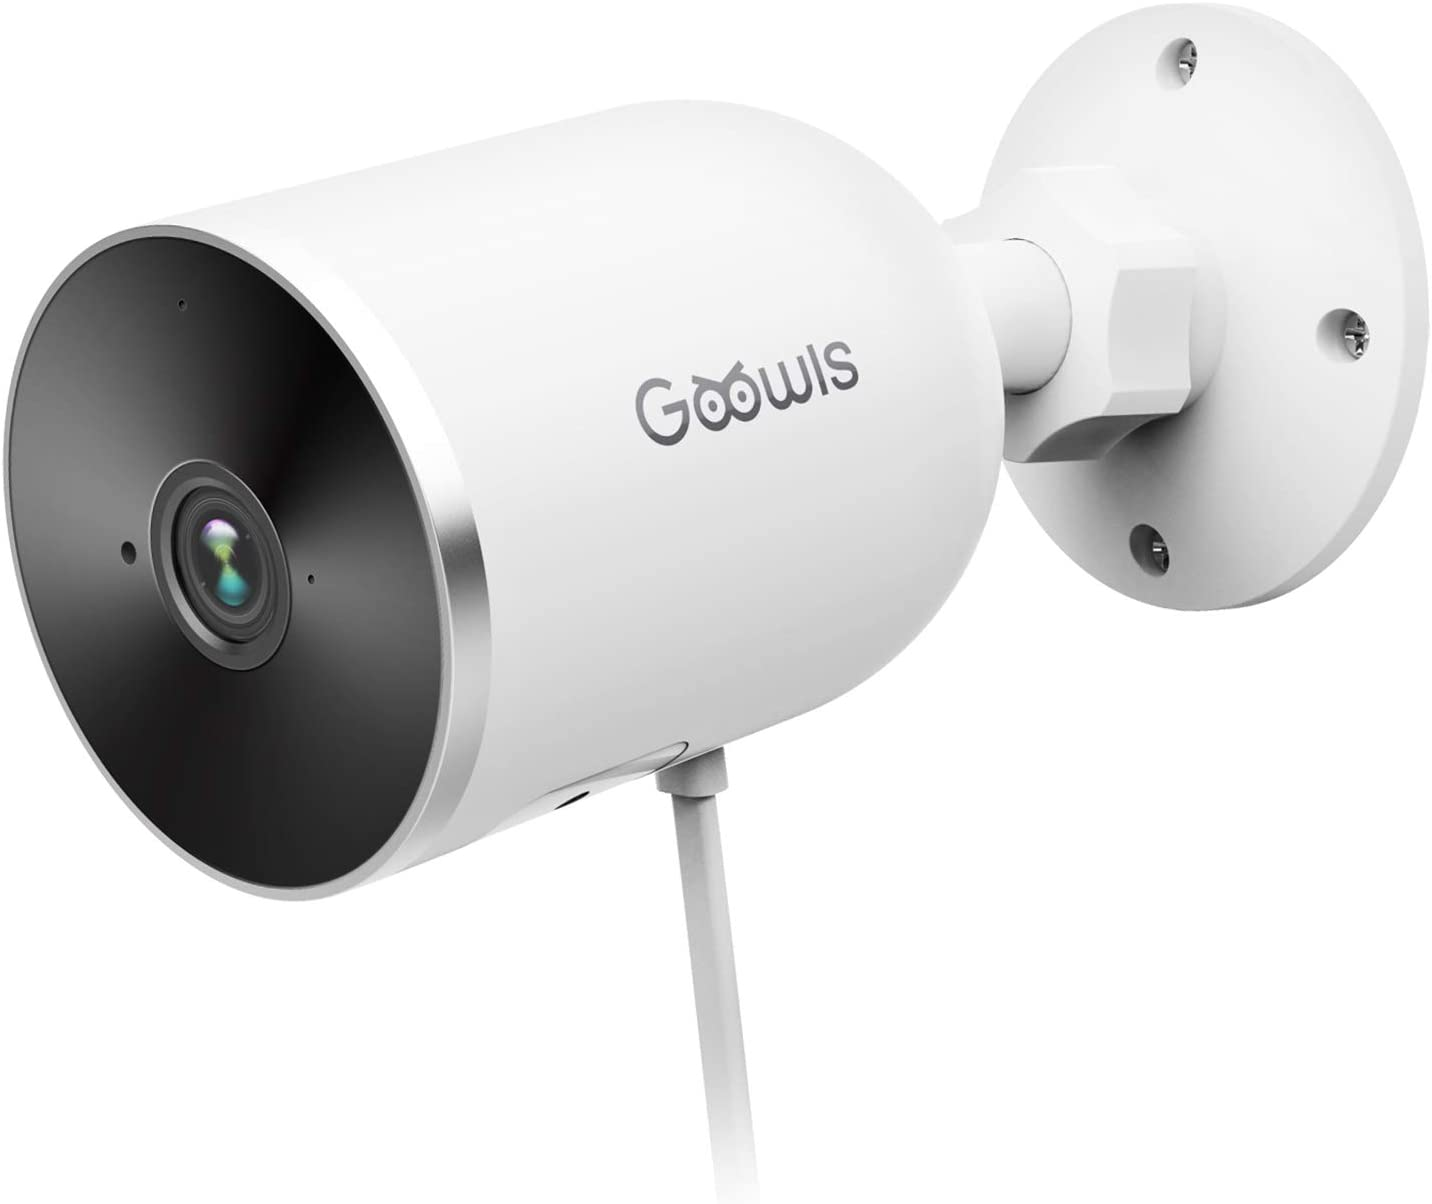 Security Camera Outdoor, Goowls 1080P WiFi Camera Home Security Surveillance Wired IP Camera Waterproof Motion Detection Night Vision 2-Way Audio Cloud Service SD Storage Works with Alexa